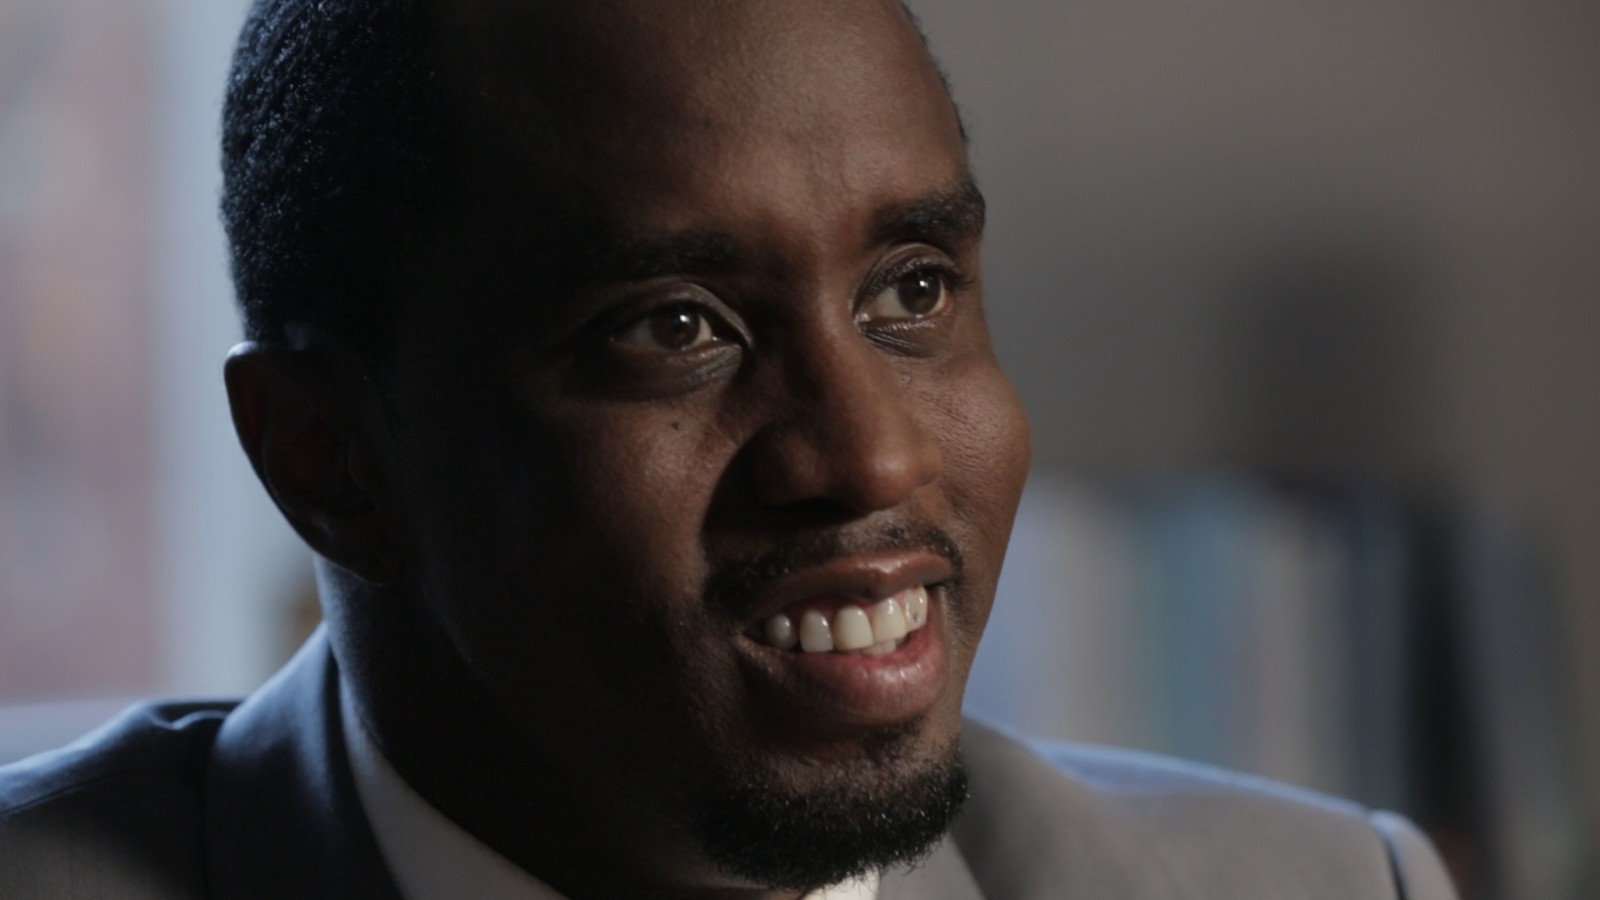 sean diddy combs on the evolution of his many name changes cnn